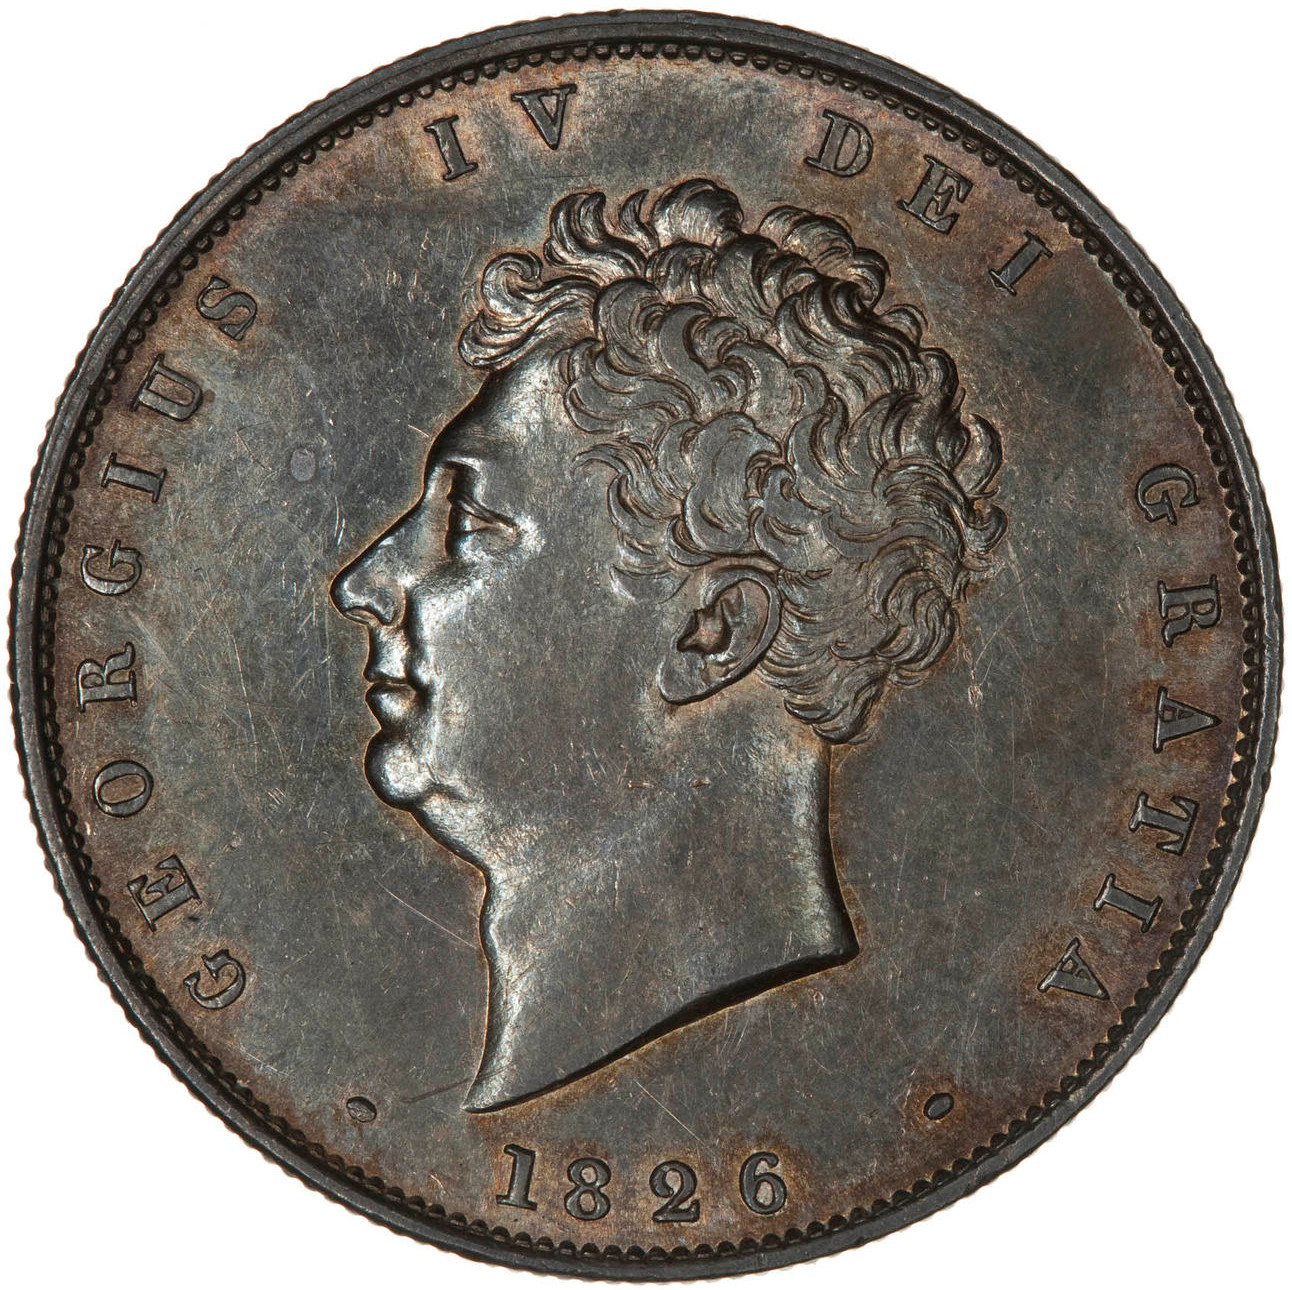 Halfcrown 1826: Photo Coin - Halfcrown, George IV, Great Britain, 1826